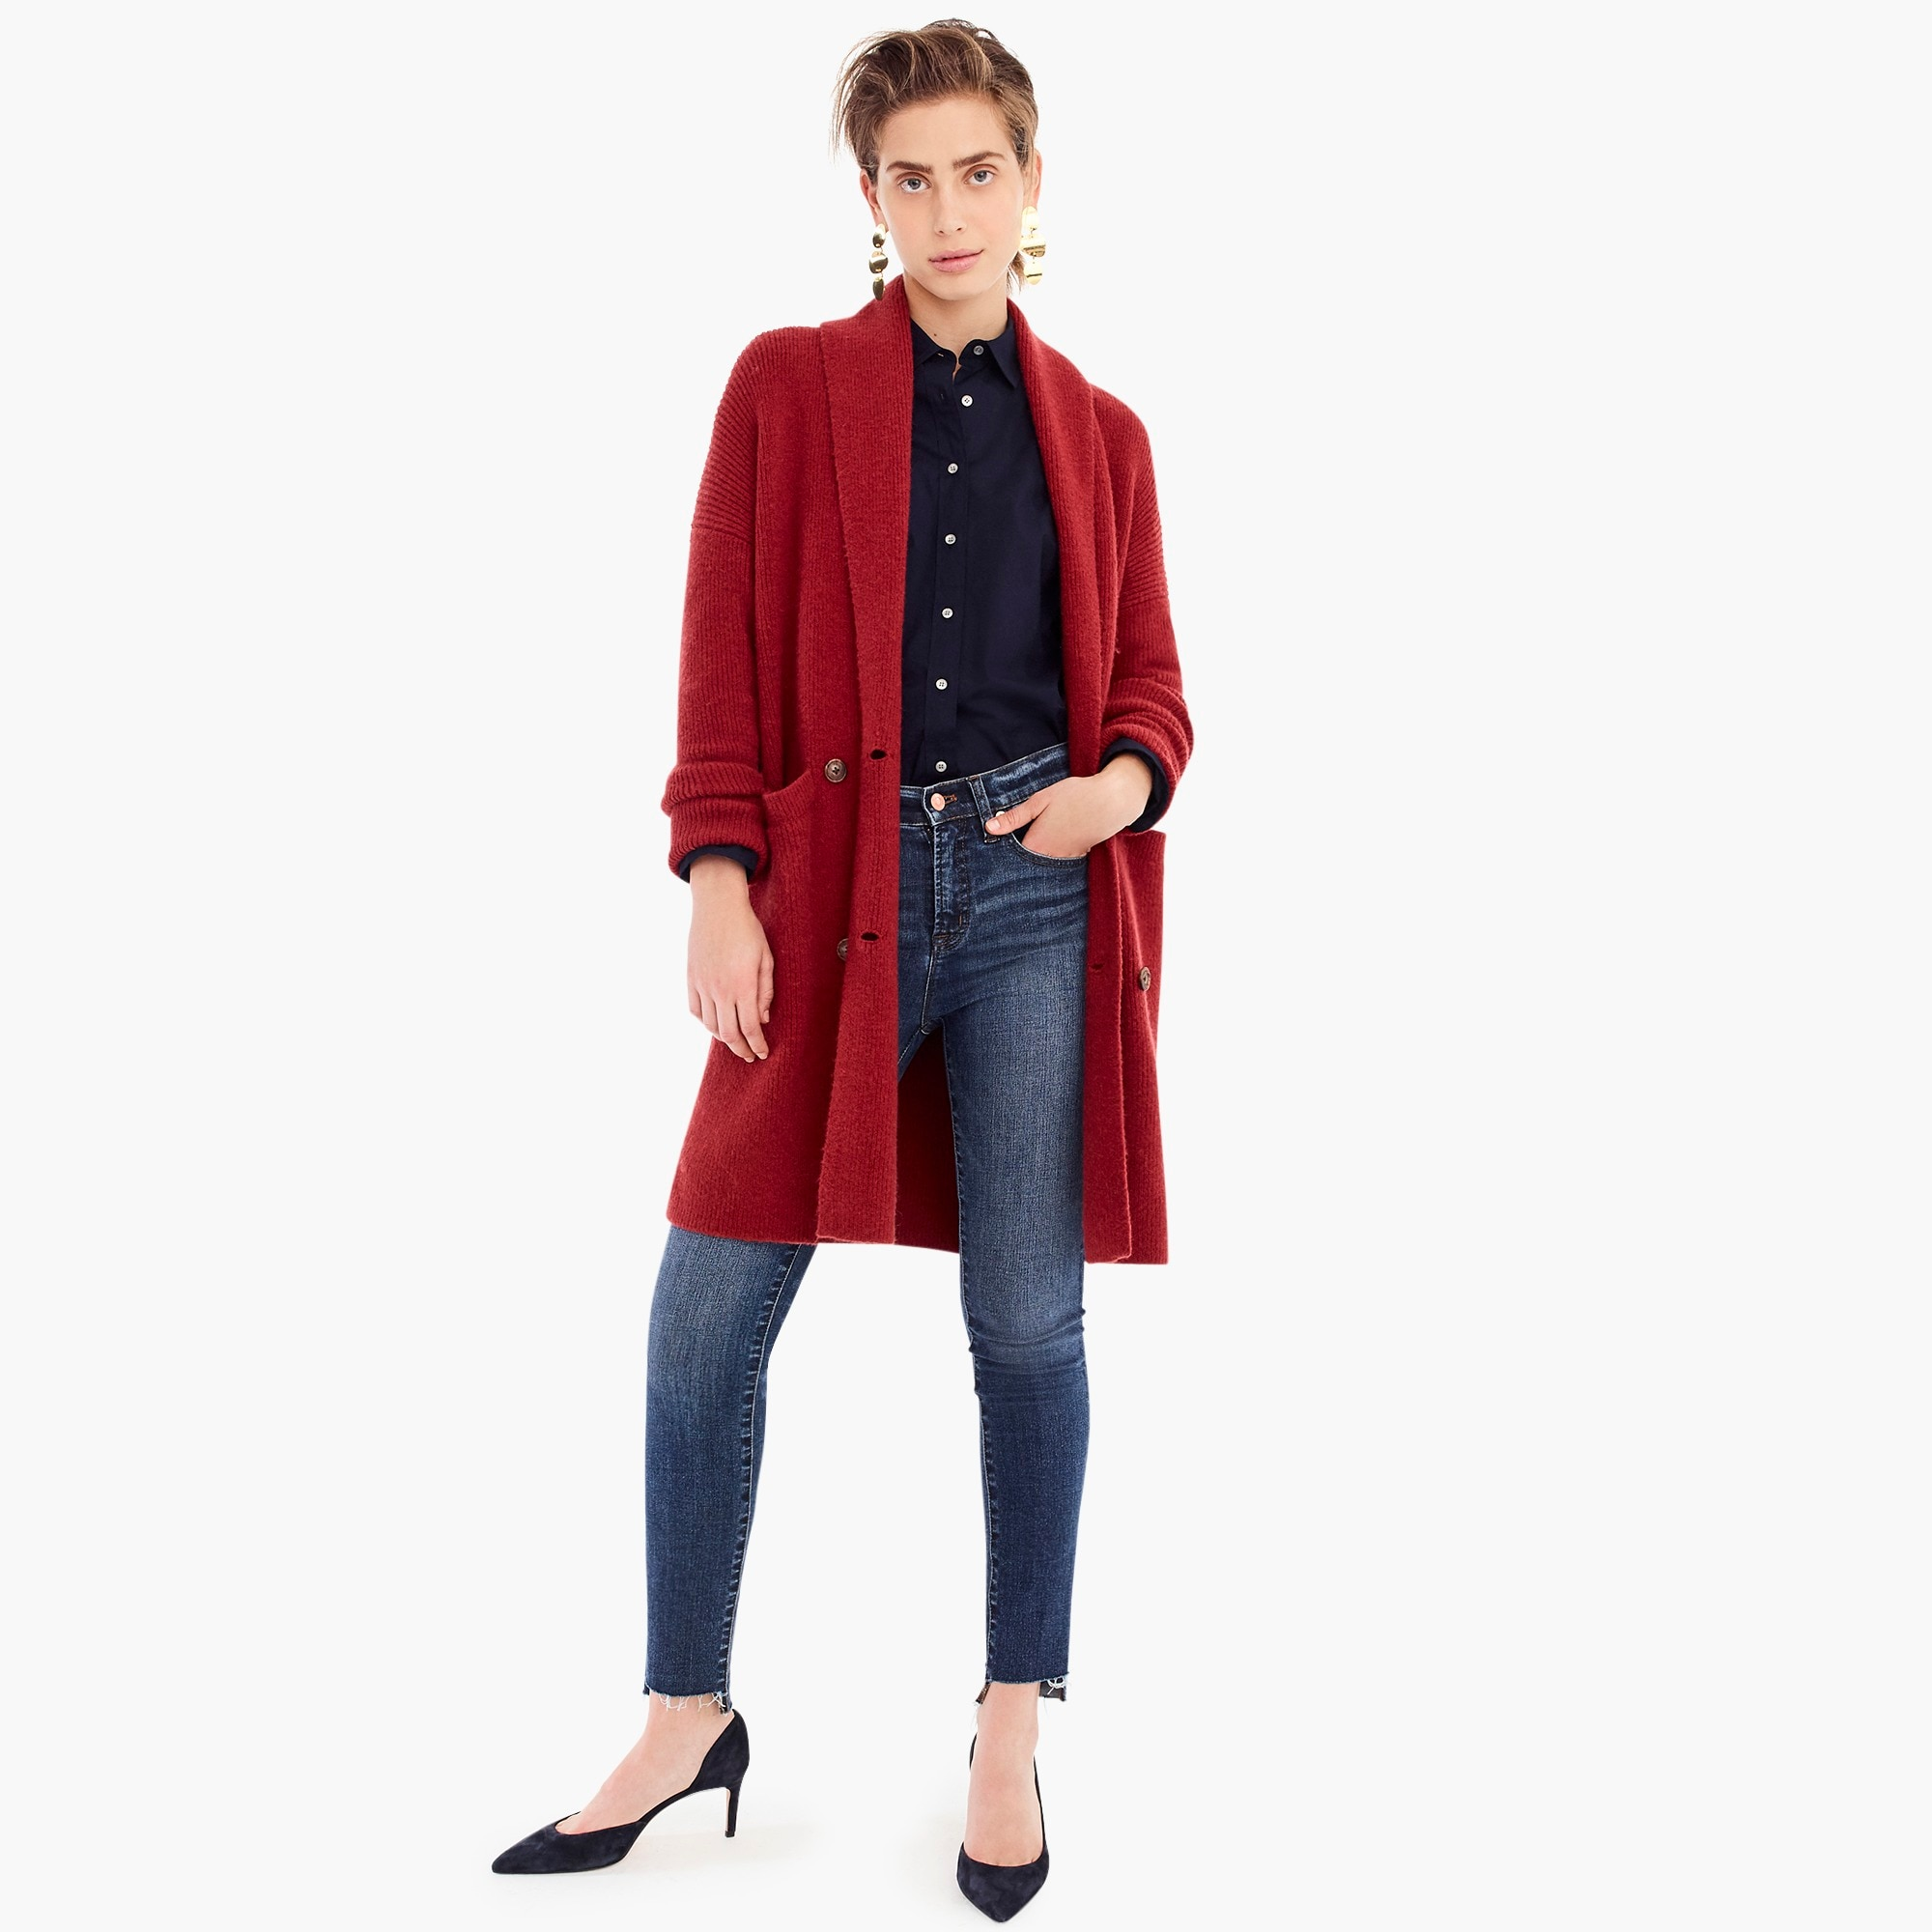 womens Double-breasted cardigan coat in supersoft yarn